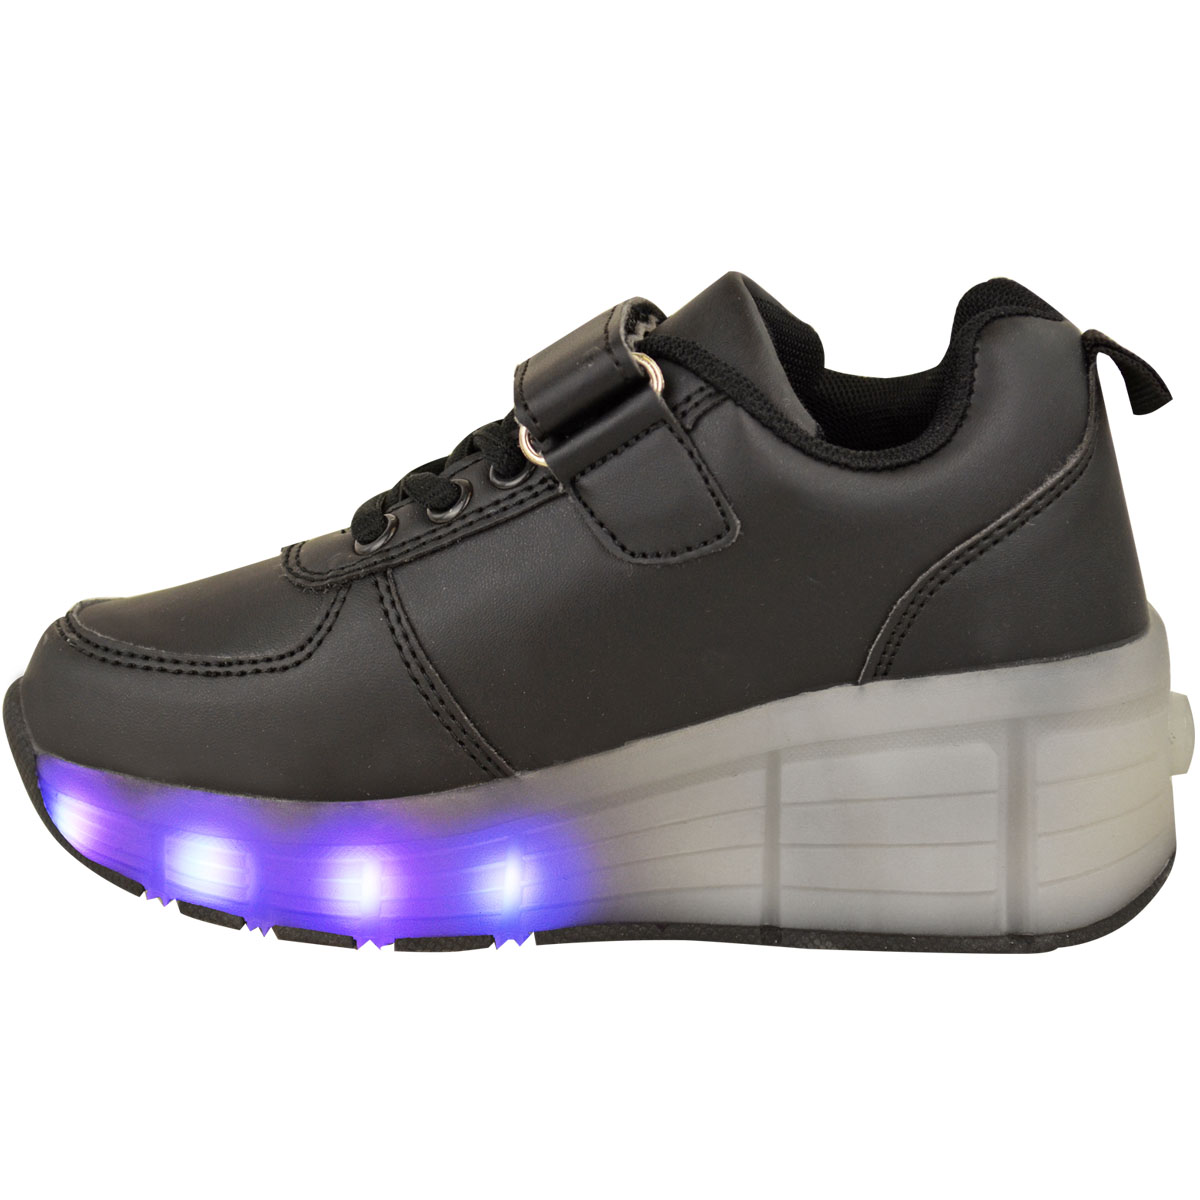 Maniamixx Kids LED Light up Sports Shoes Luminous Trainers Flashing Sneakers Gifts for Boys Girls. £ - £ Prime. 5 out of 5 stars 4. O&N Kids Boys Girls LED Light Up Trainers Shoes USB Charging Sneakers Running Shoes. £ - £ 4 out of 5 stars Previous Page 1 2 3 96 Next Page. Show results for.